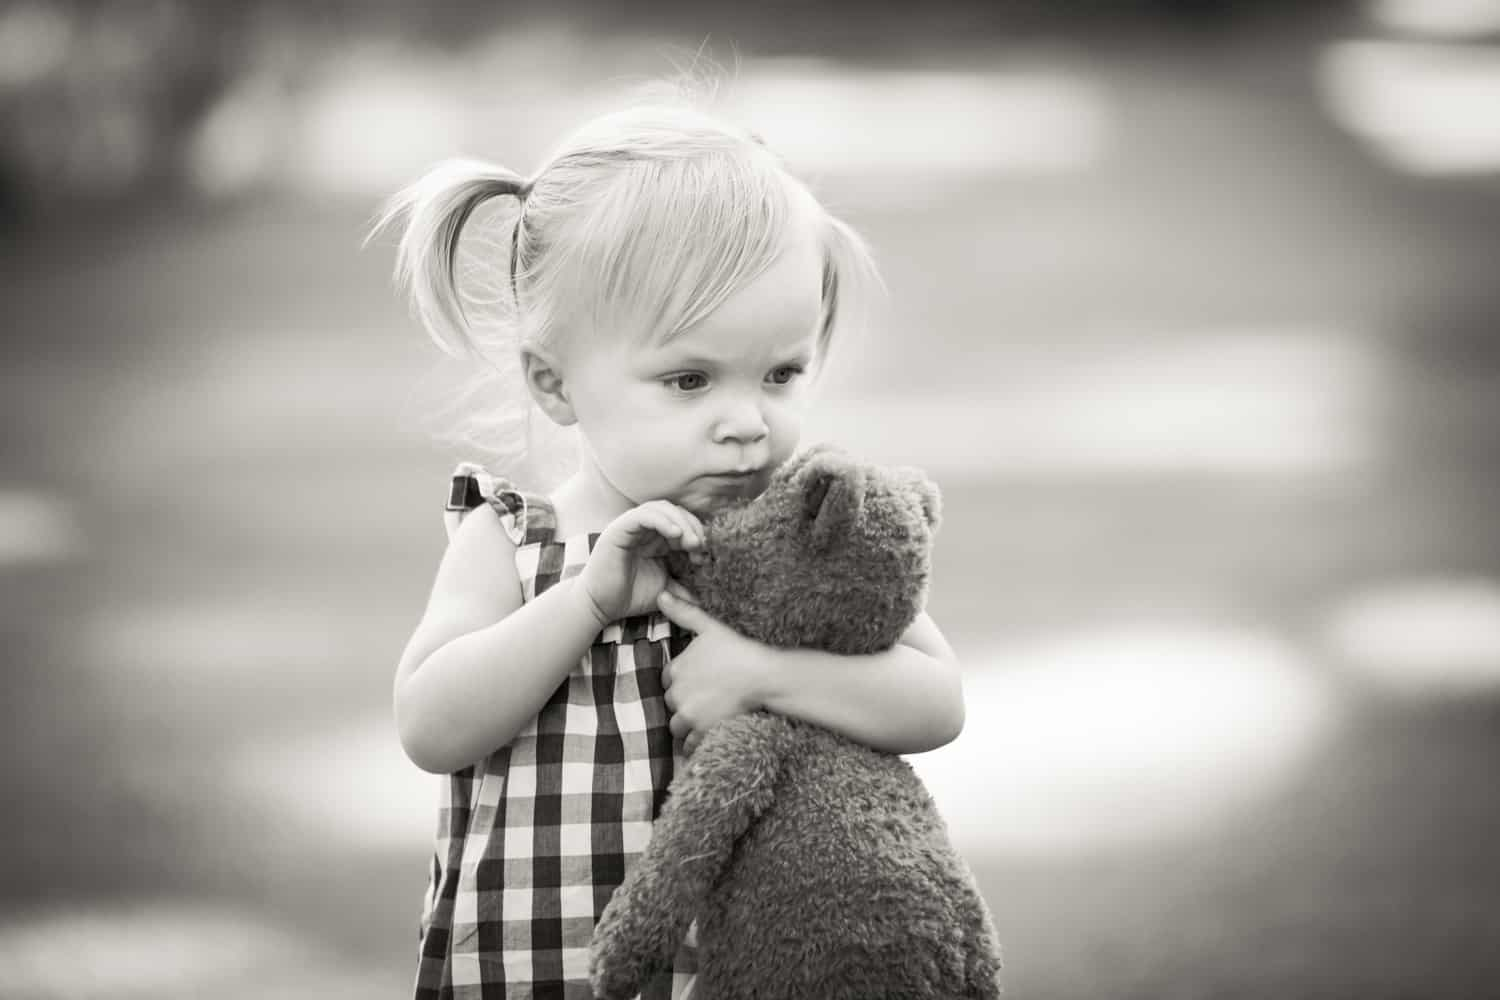 Black and white photo of little girl holding stuffed teddy bear